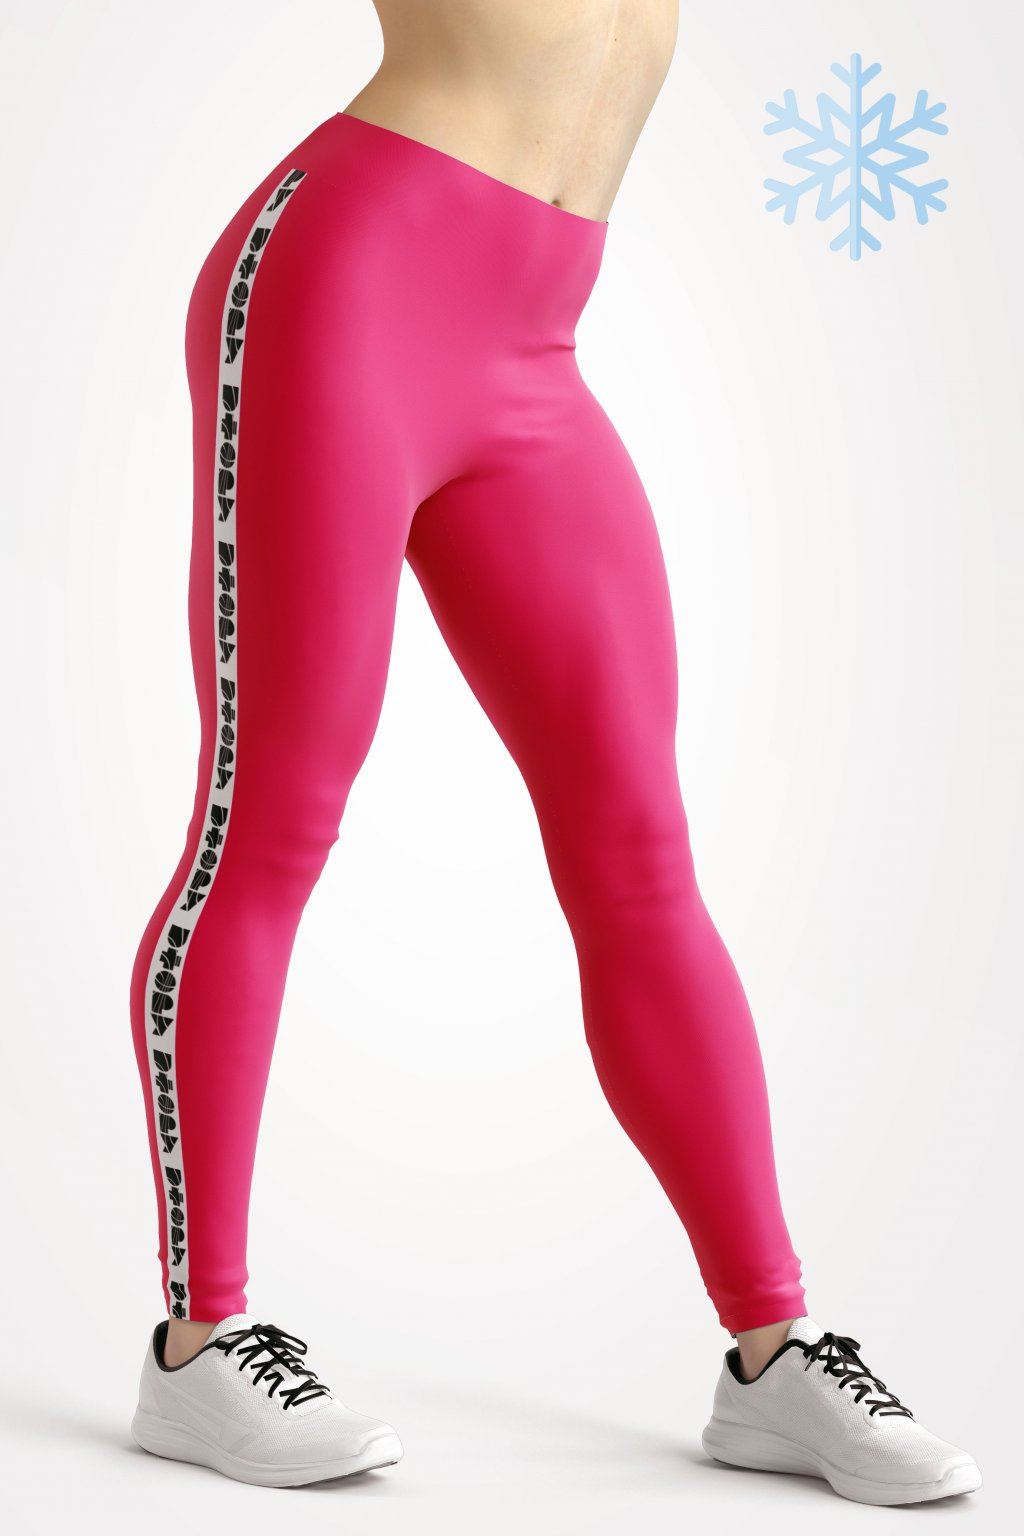 termo leginy basic collection pink utopy front by utopy v2